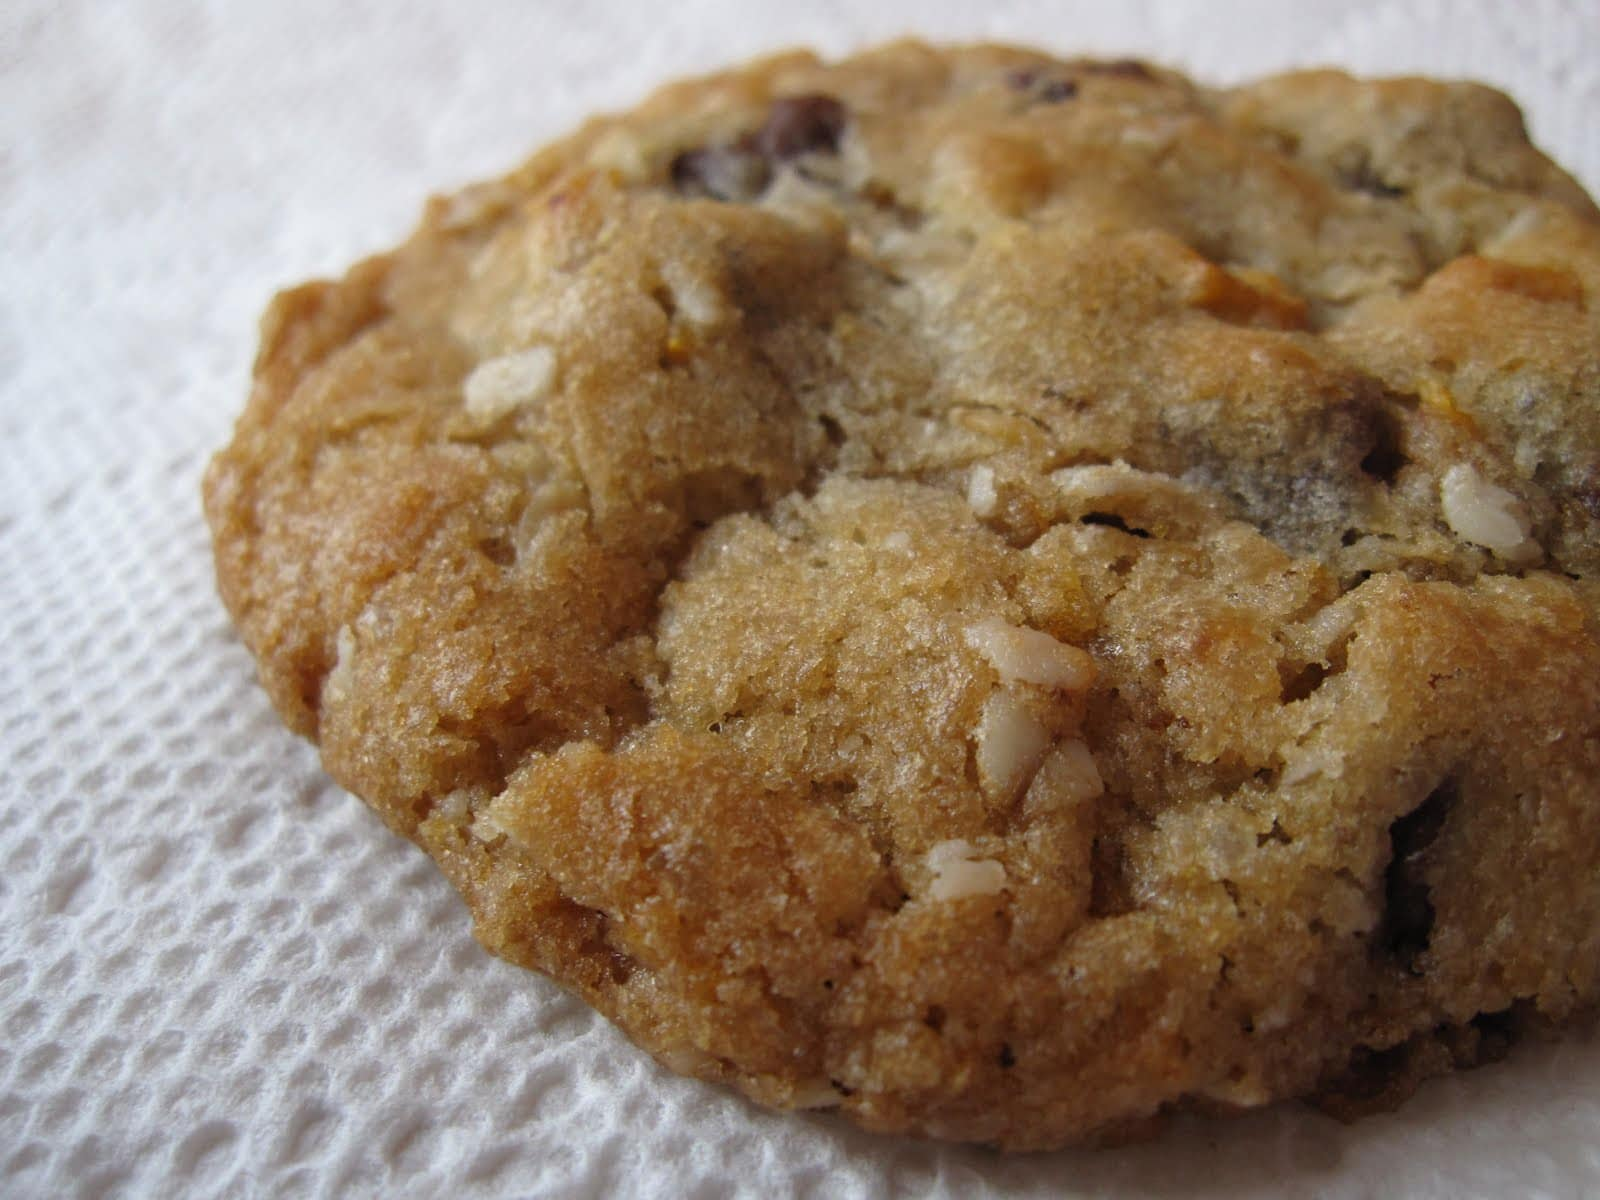 Close-up of a Cornflake chocolate chip cookie